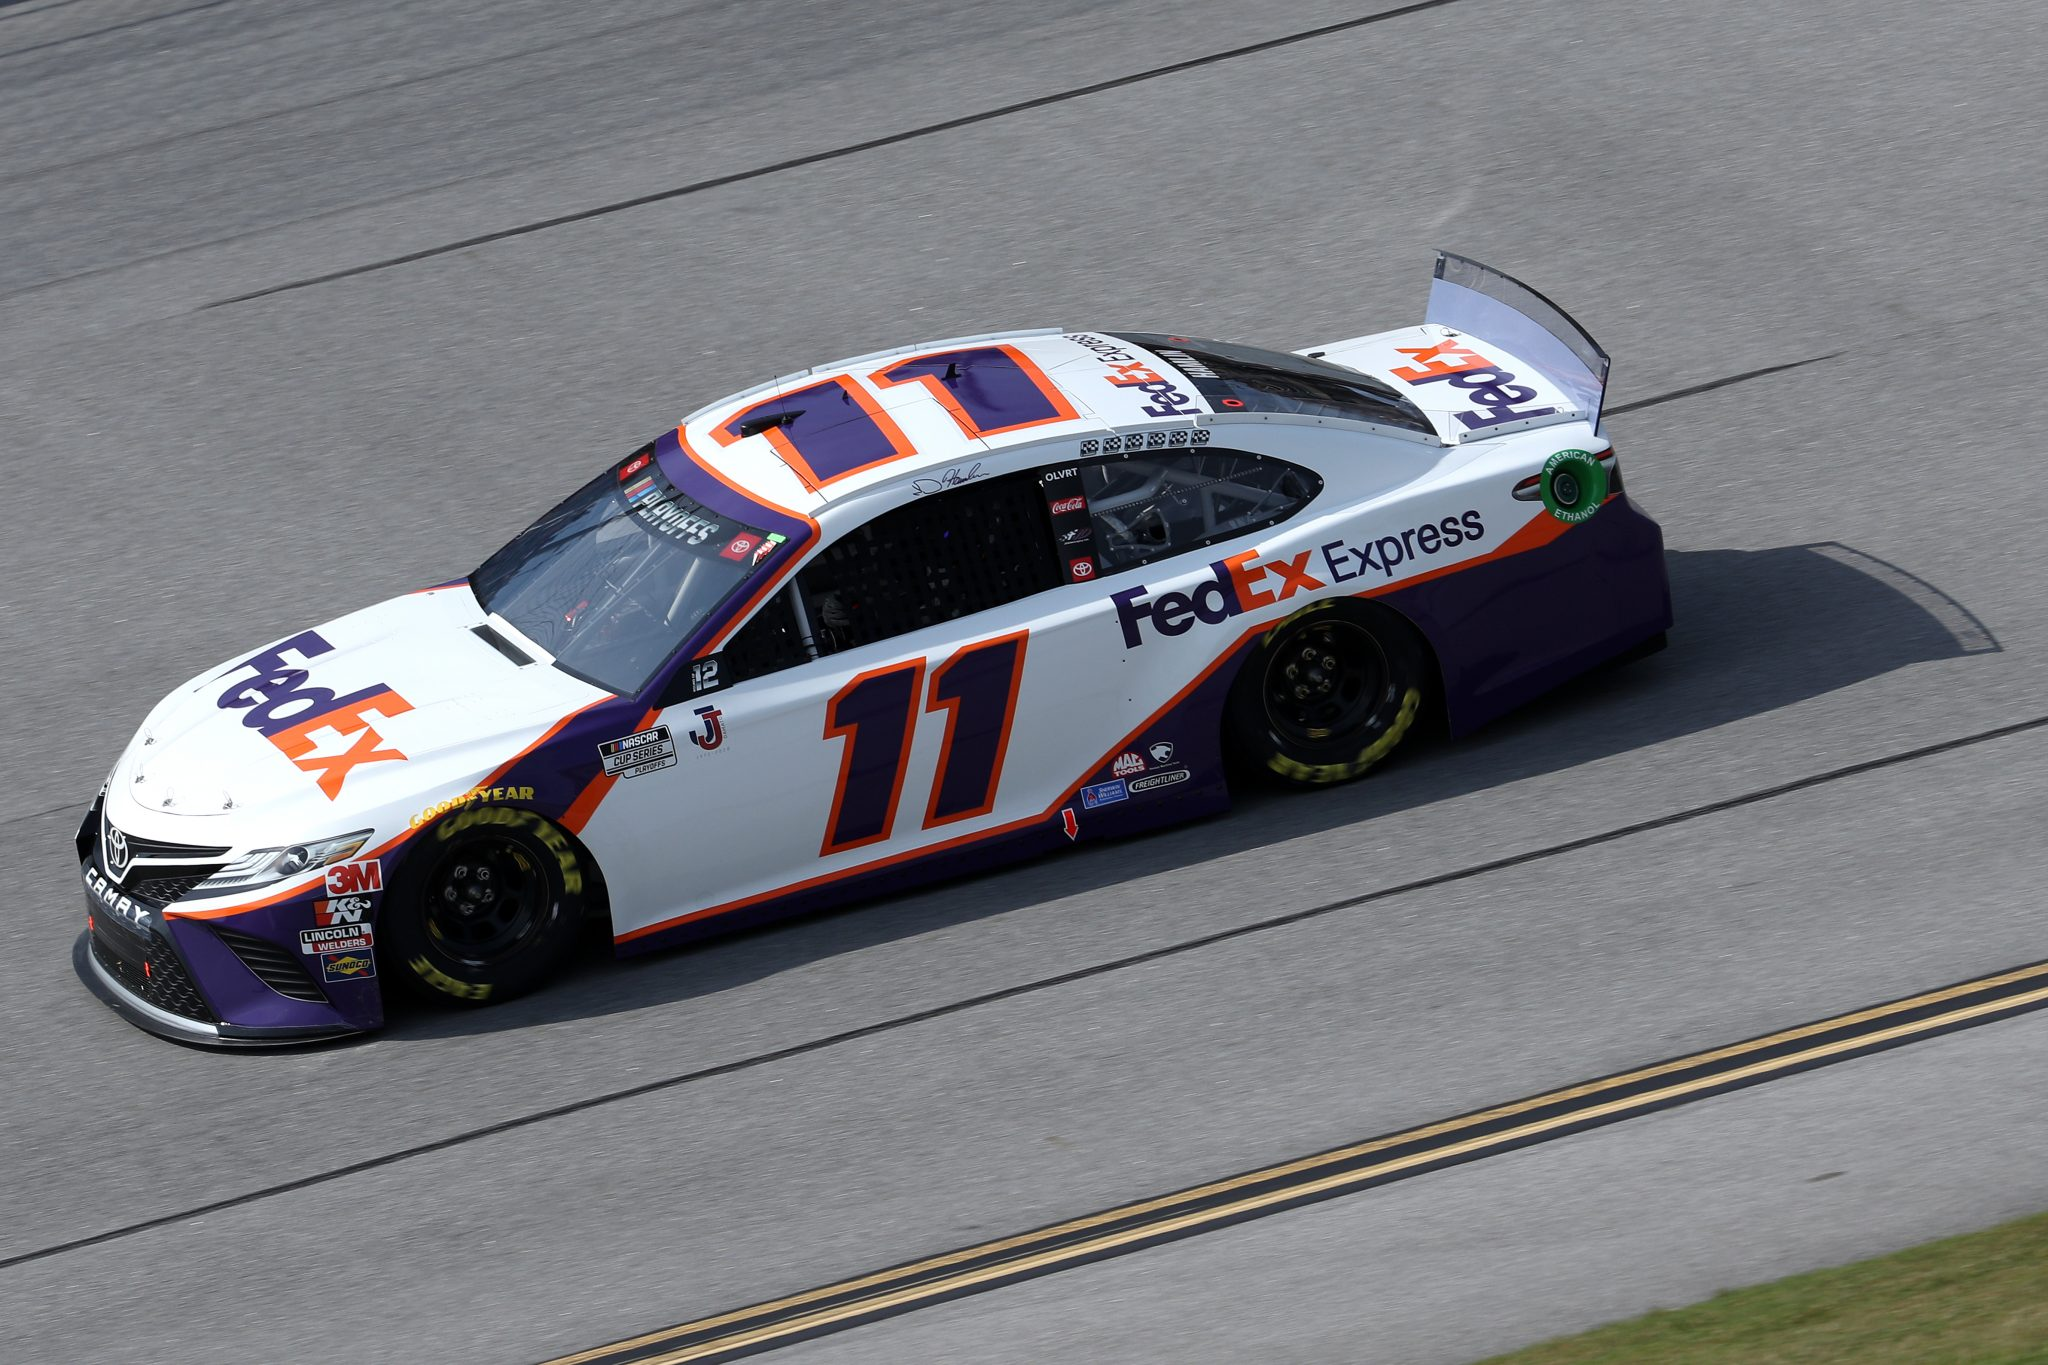 TALLADEGA, ALABAMA - OCTOBER 04: Denny Hamlin, driver of the #11 FedEx Express Toyota, drives during the NASCAR Cup Series YellaWood 500 at Talladega Superspeedway on October 04, 2020 in Talladega, Alabama. (Photo by Chris Graythen/Getty Images) | Getty Images